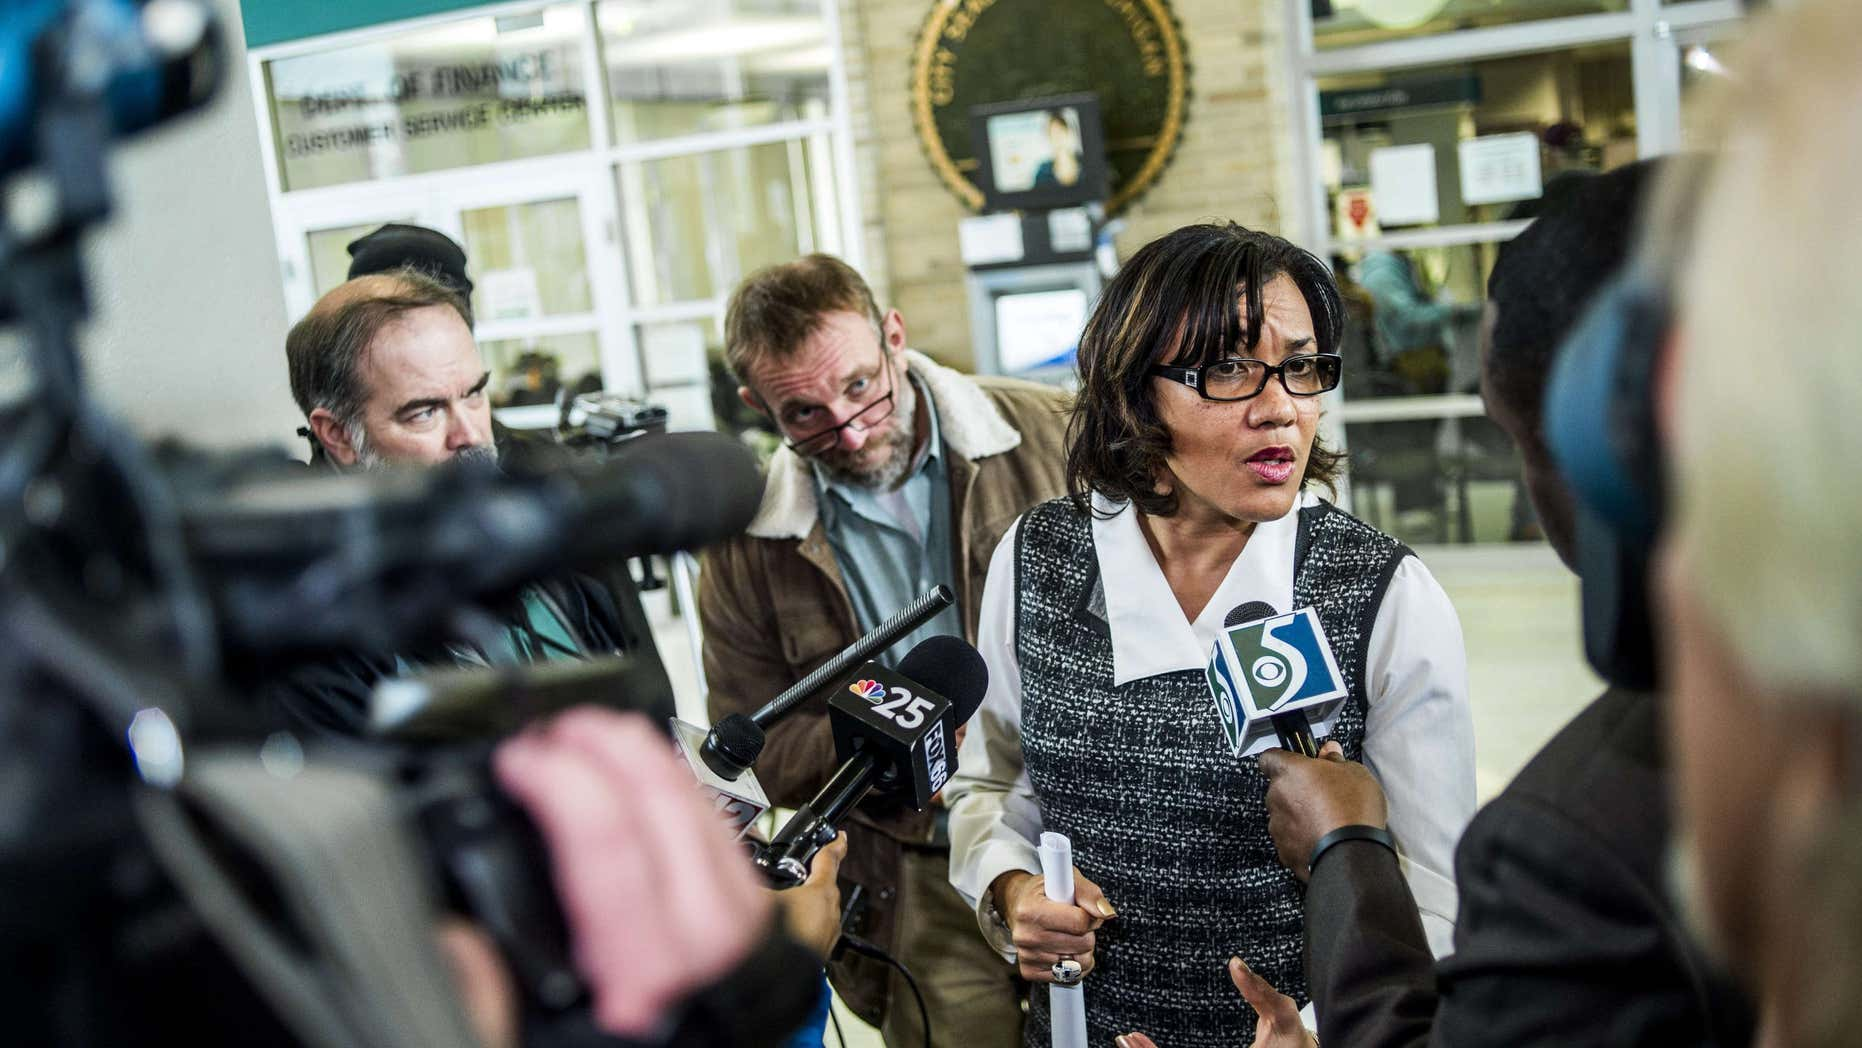 Dec. 15, 2015: A swarm of reporters surround Flint Mayor Karen Weaver to ask question after a news conference at City Hall in Flint, Mich.